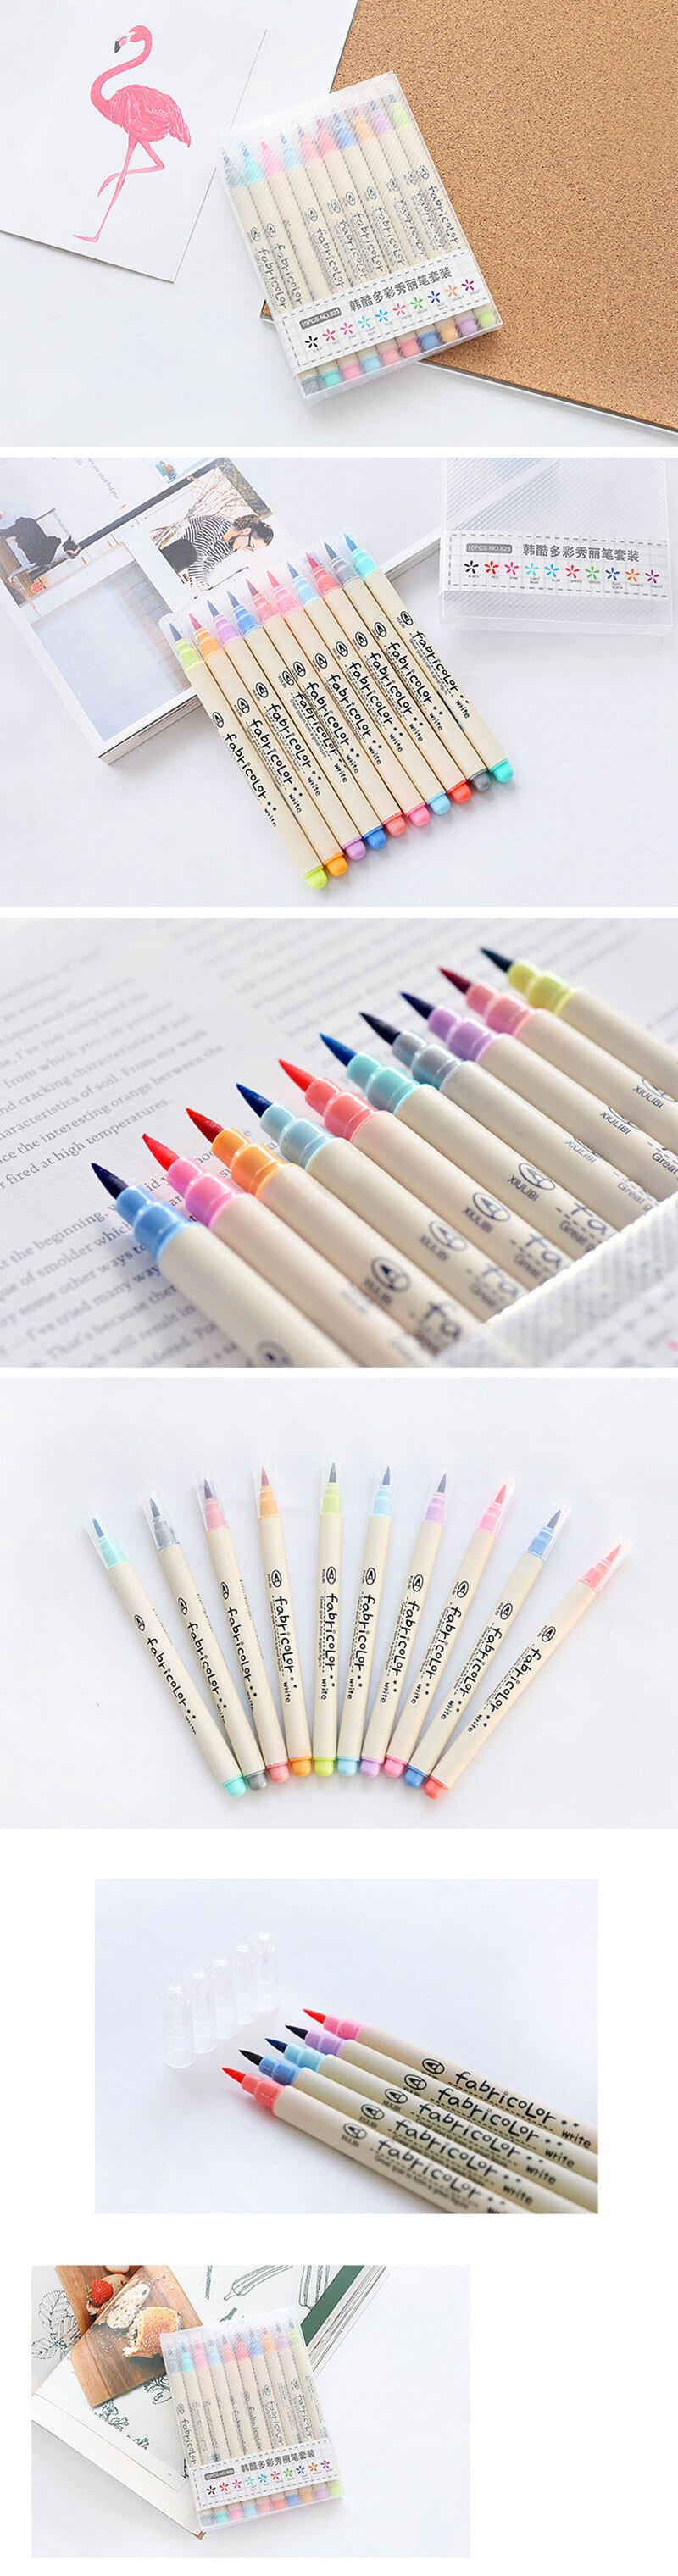 Fabricolor Brush Marker Pen 10 Pcs Colors Set - Detail